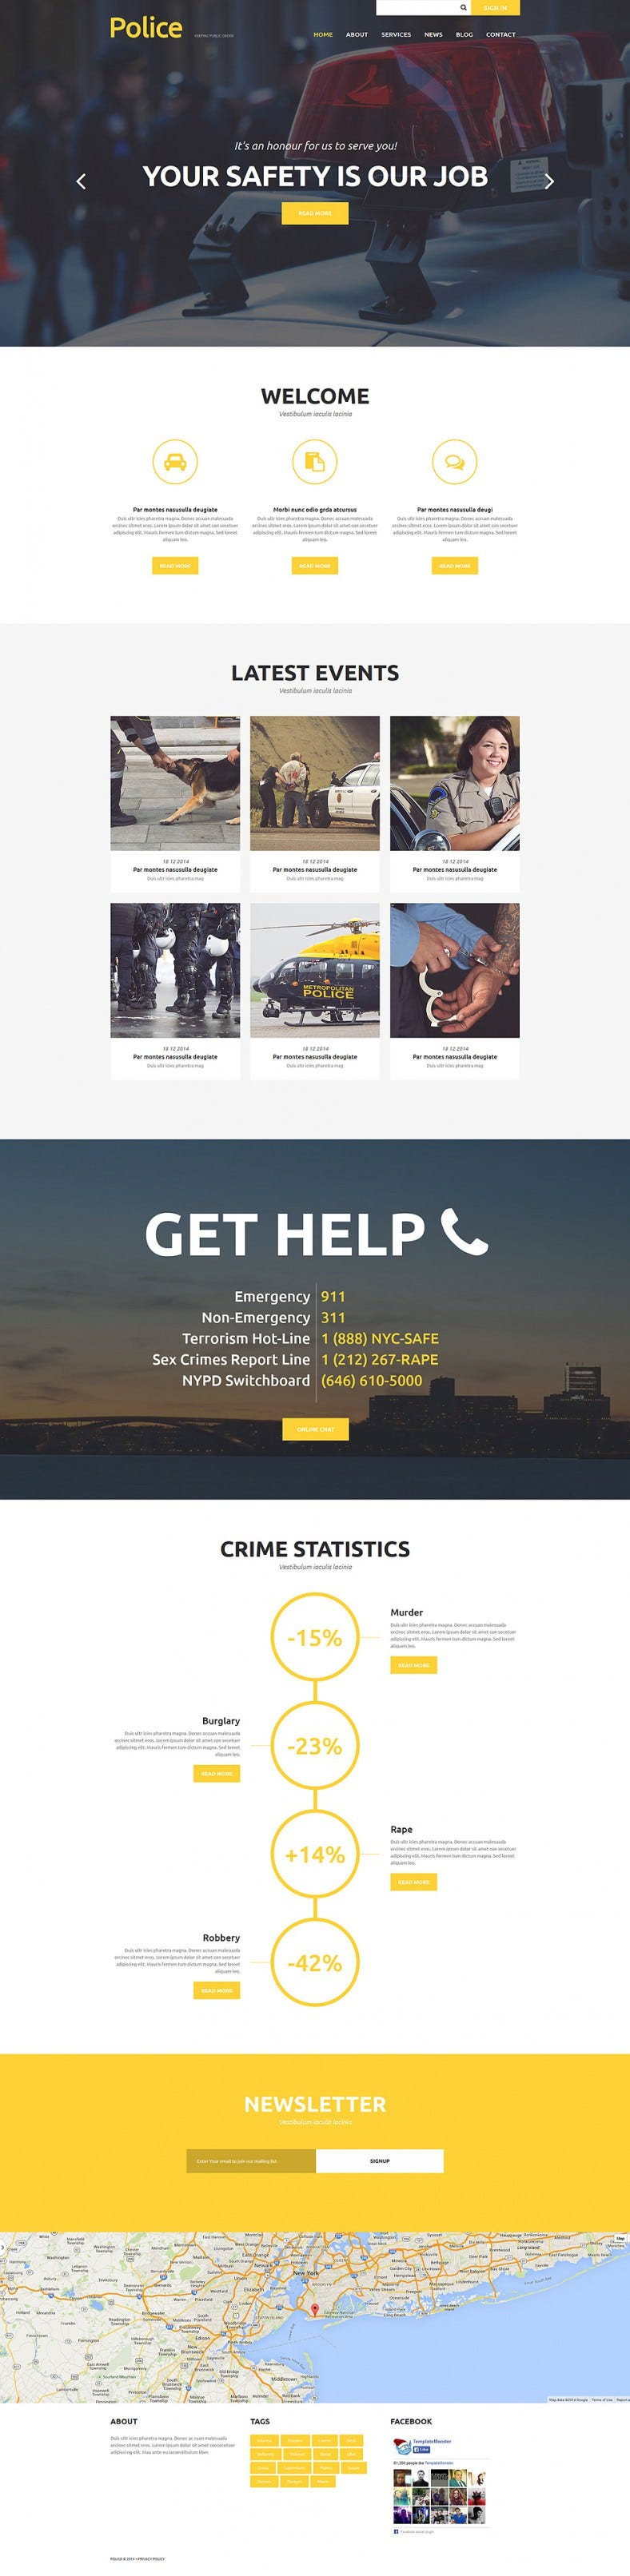 police department joomla template 788x3224